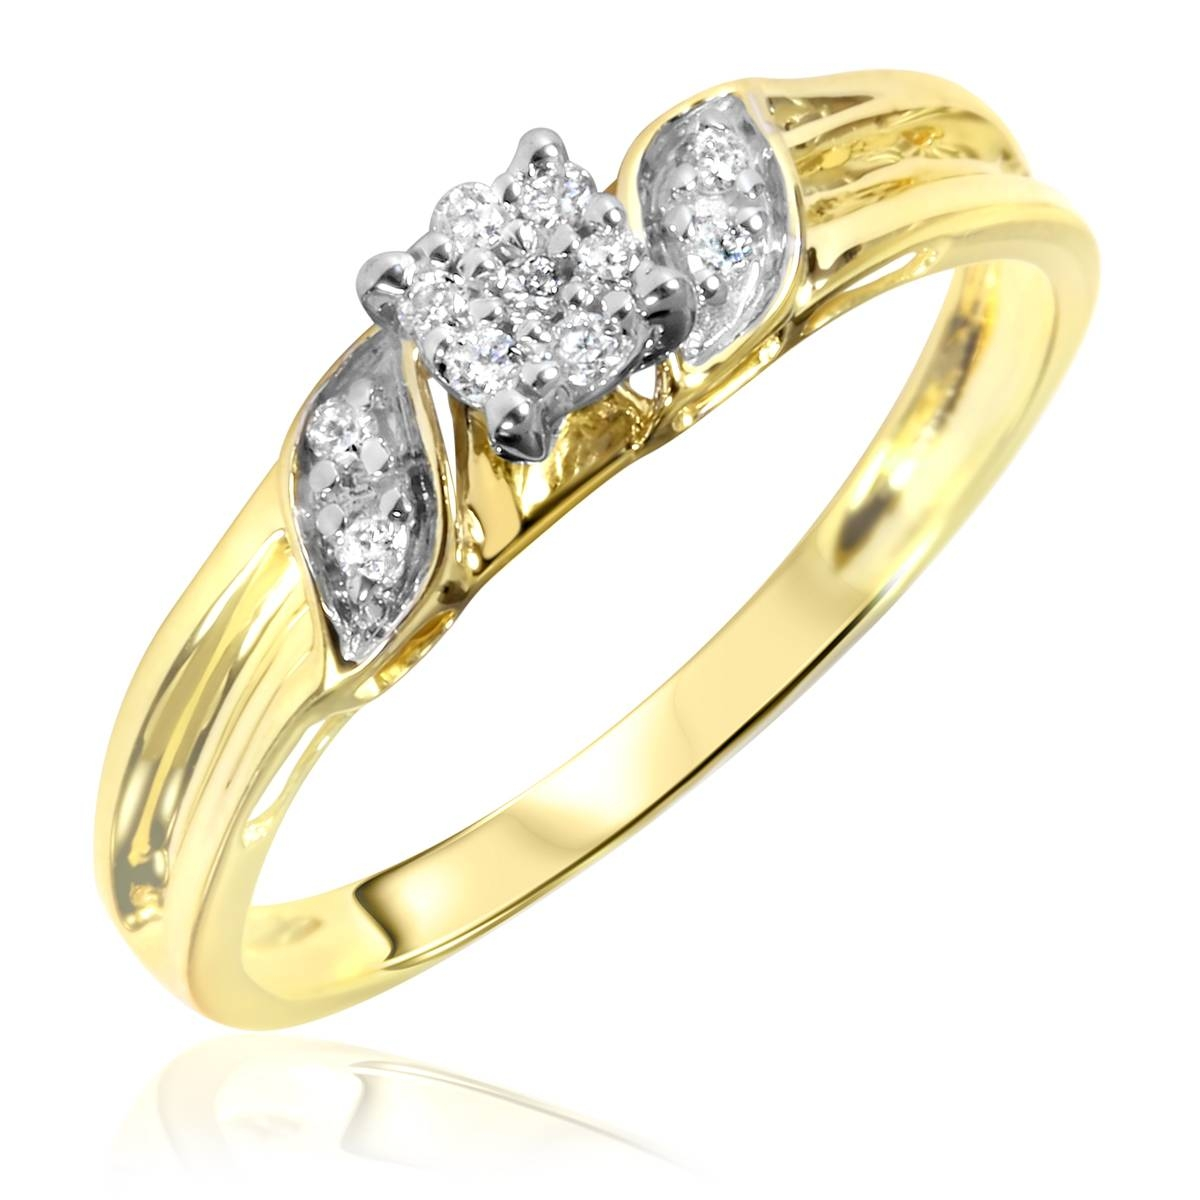 1/4 Carat Diamond Trio Wedding Ring Set 10K Yellow Gold Pertaining To Wedding And Engagement Ring Sets (View 2 of 15)